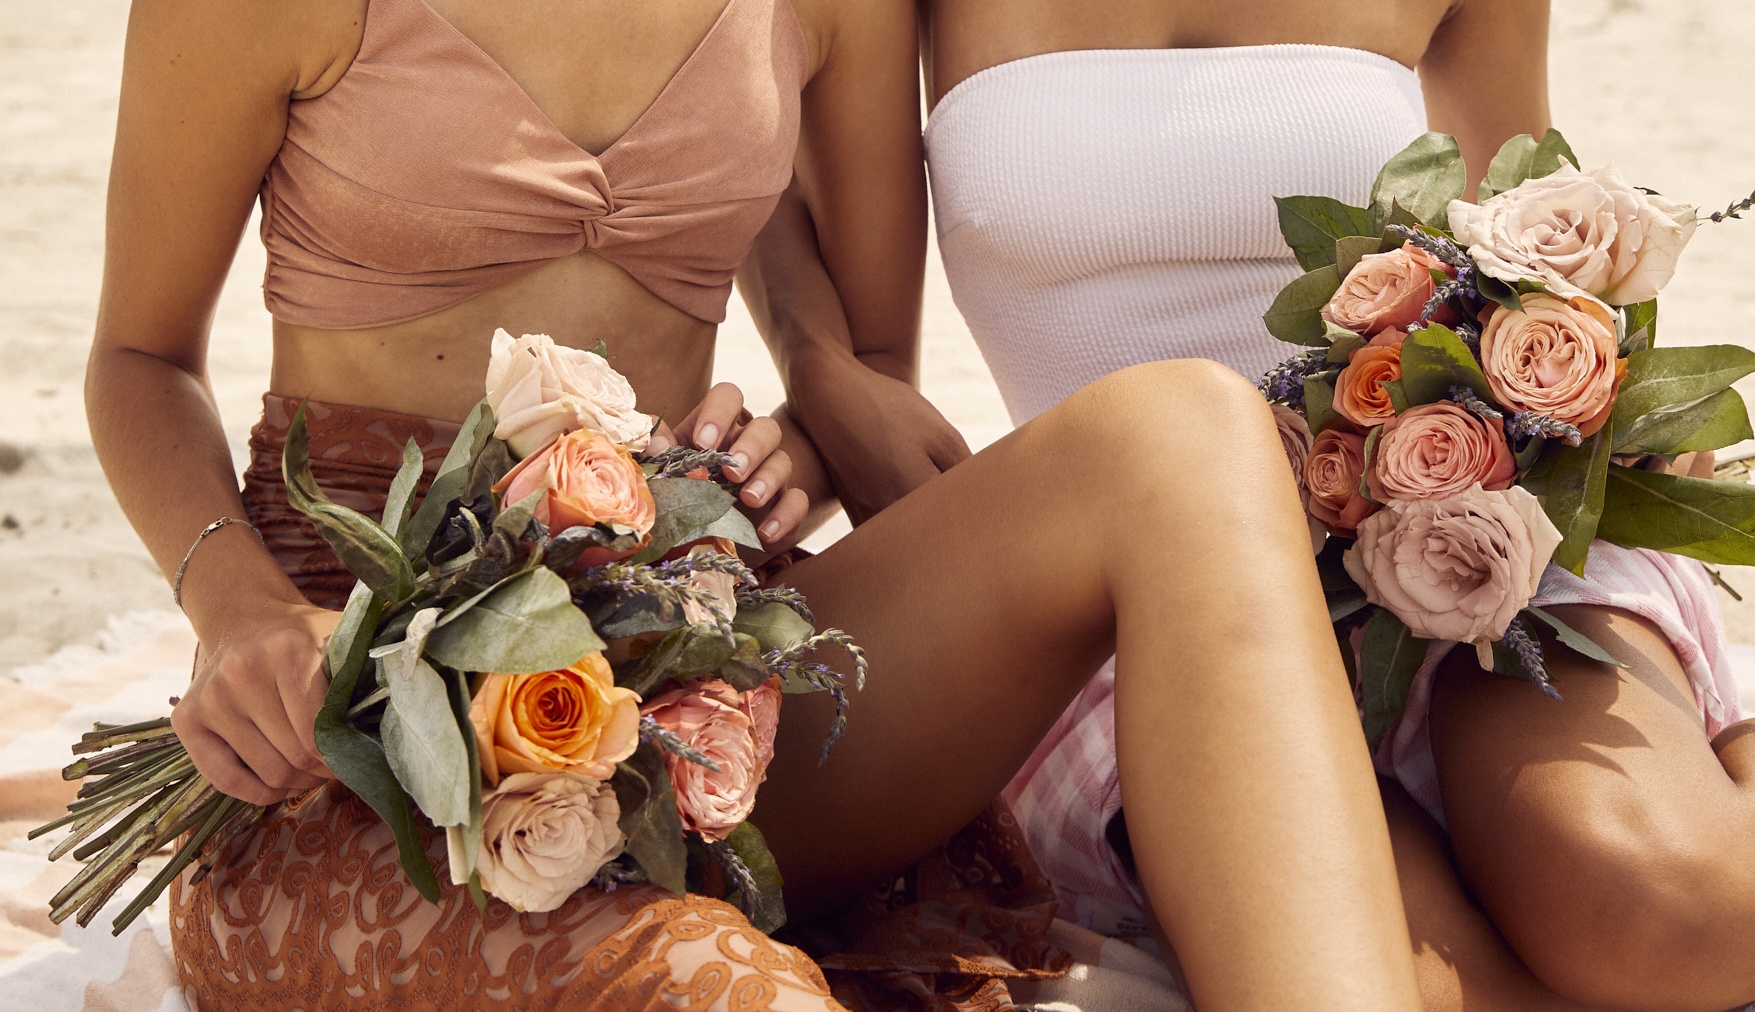 Two women on the beach holding flower bouquets